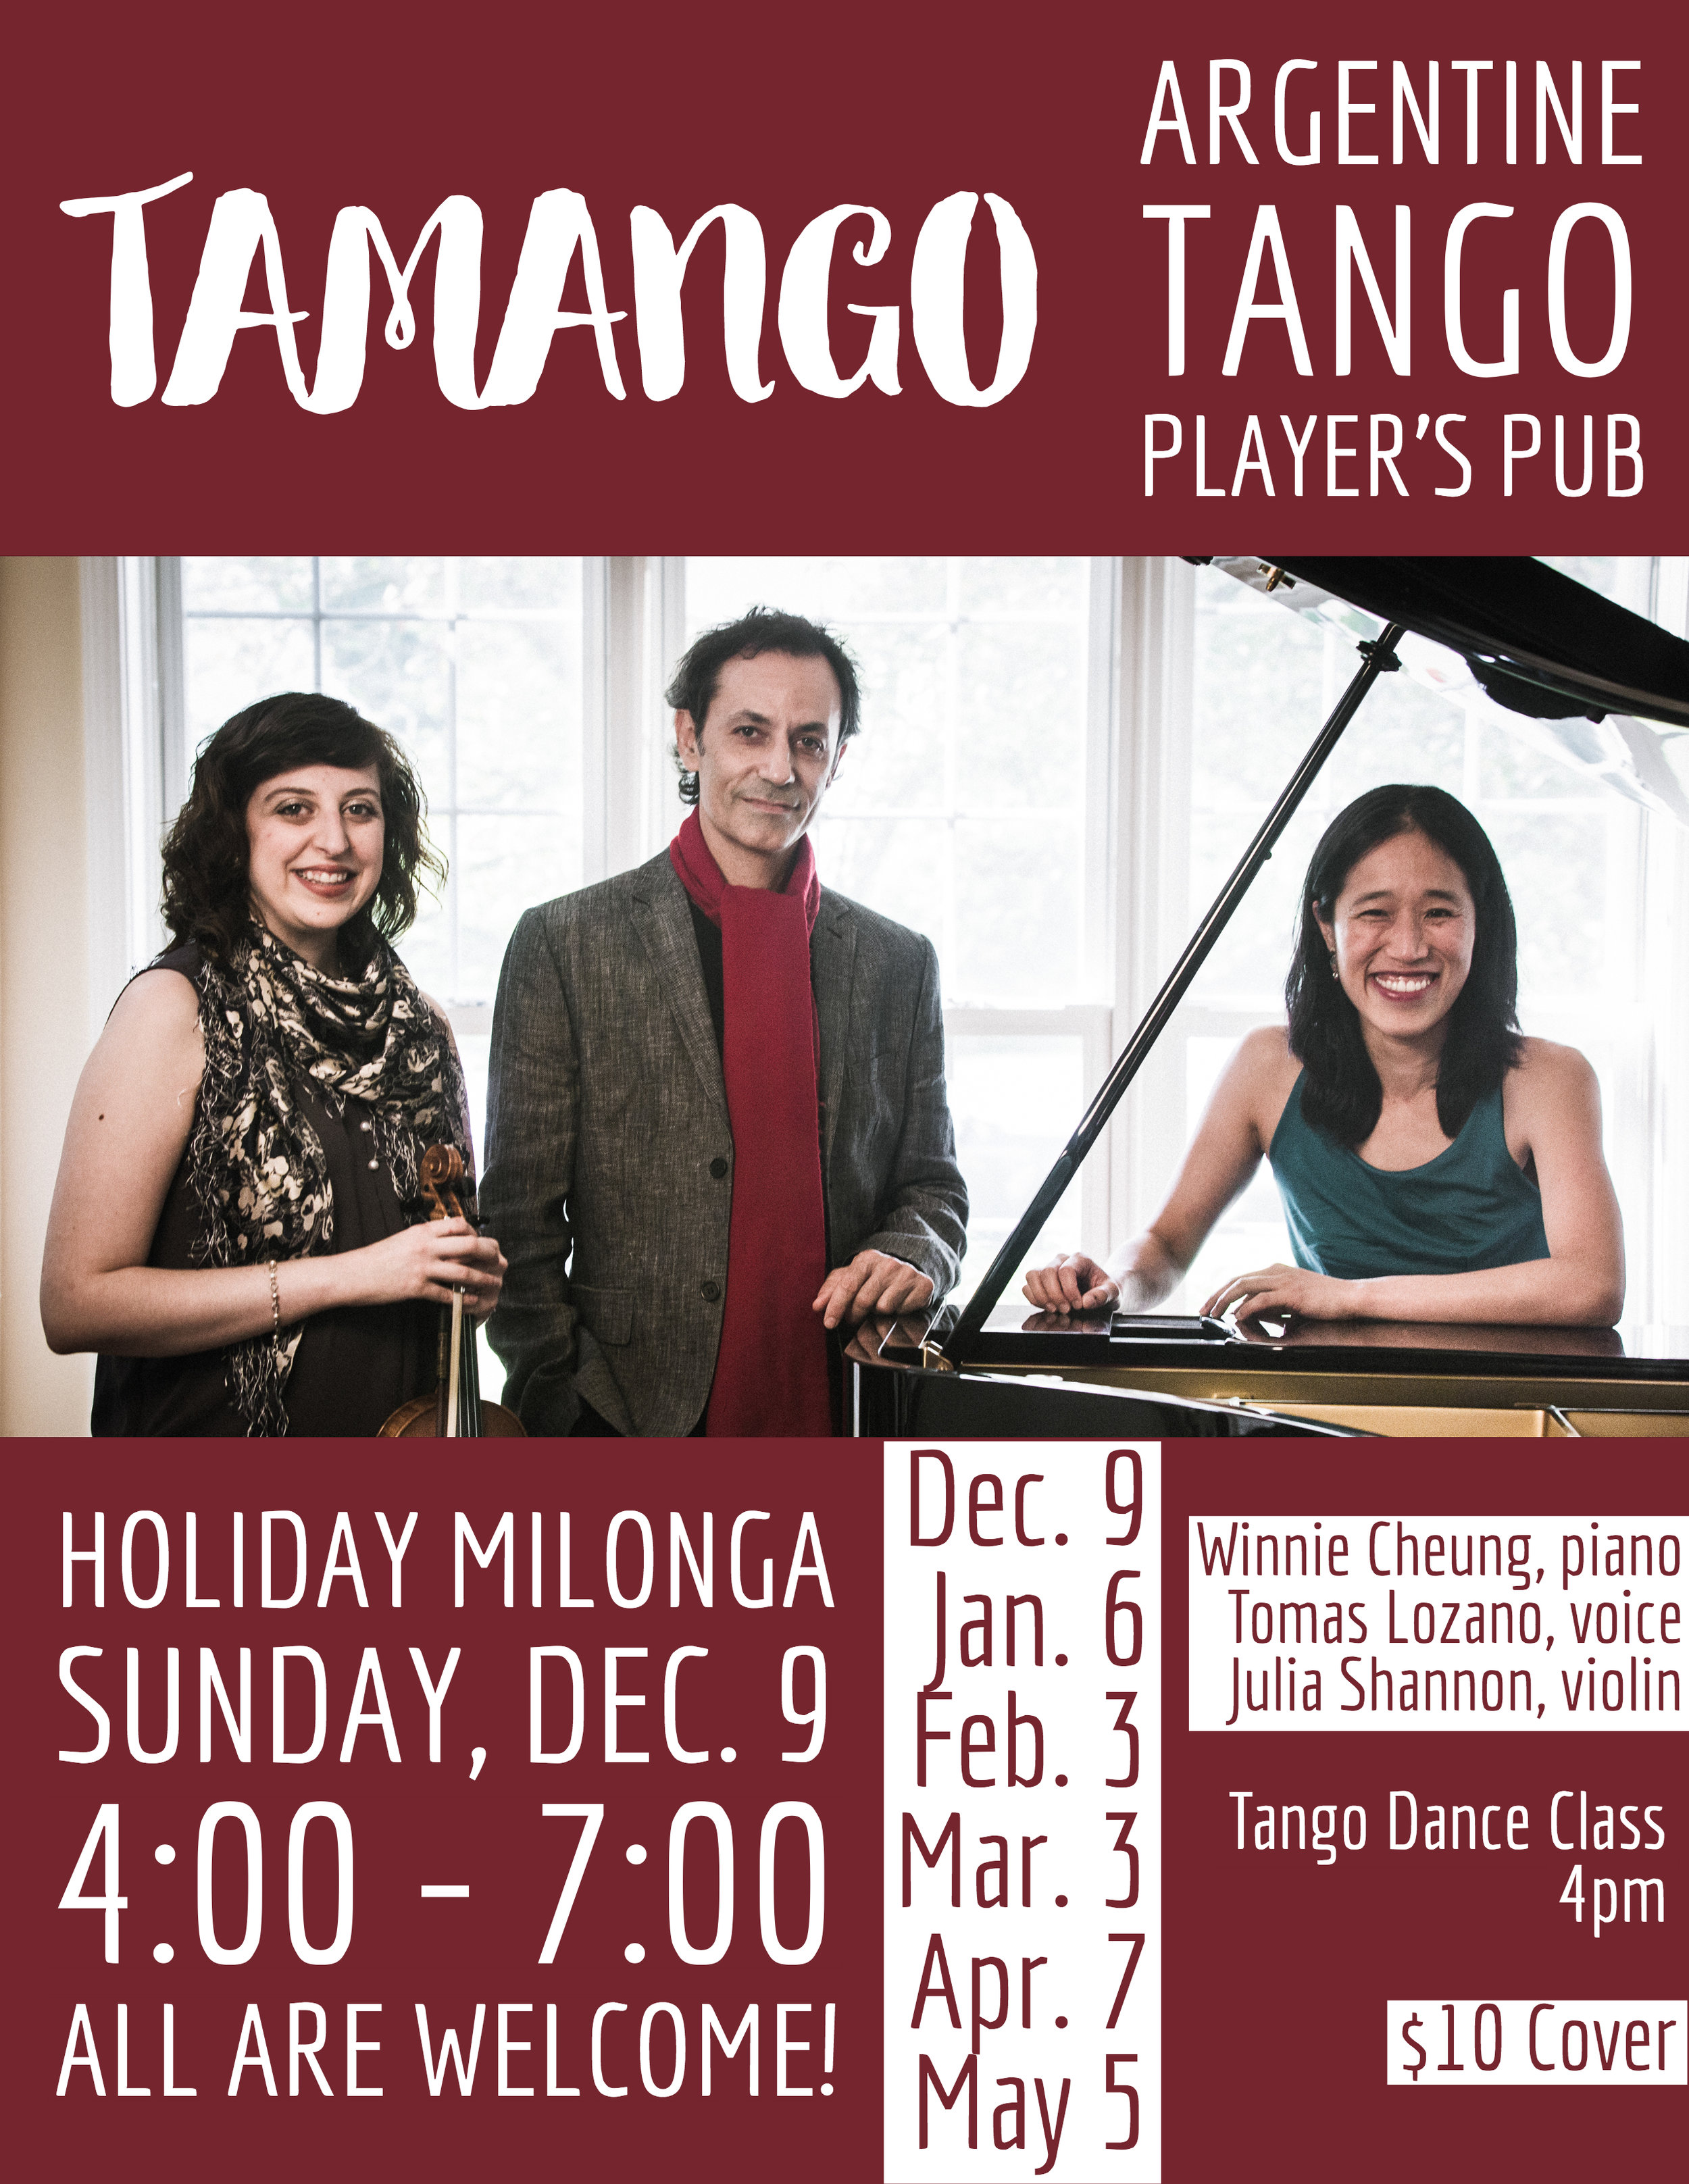 - Join us for our regular monthly milonga at the Player's Pub and celebrate the holiday season!